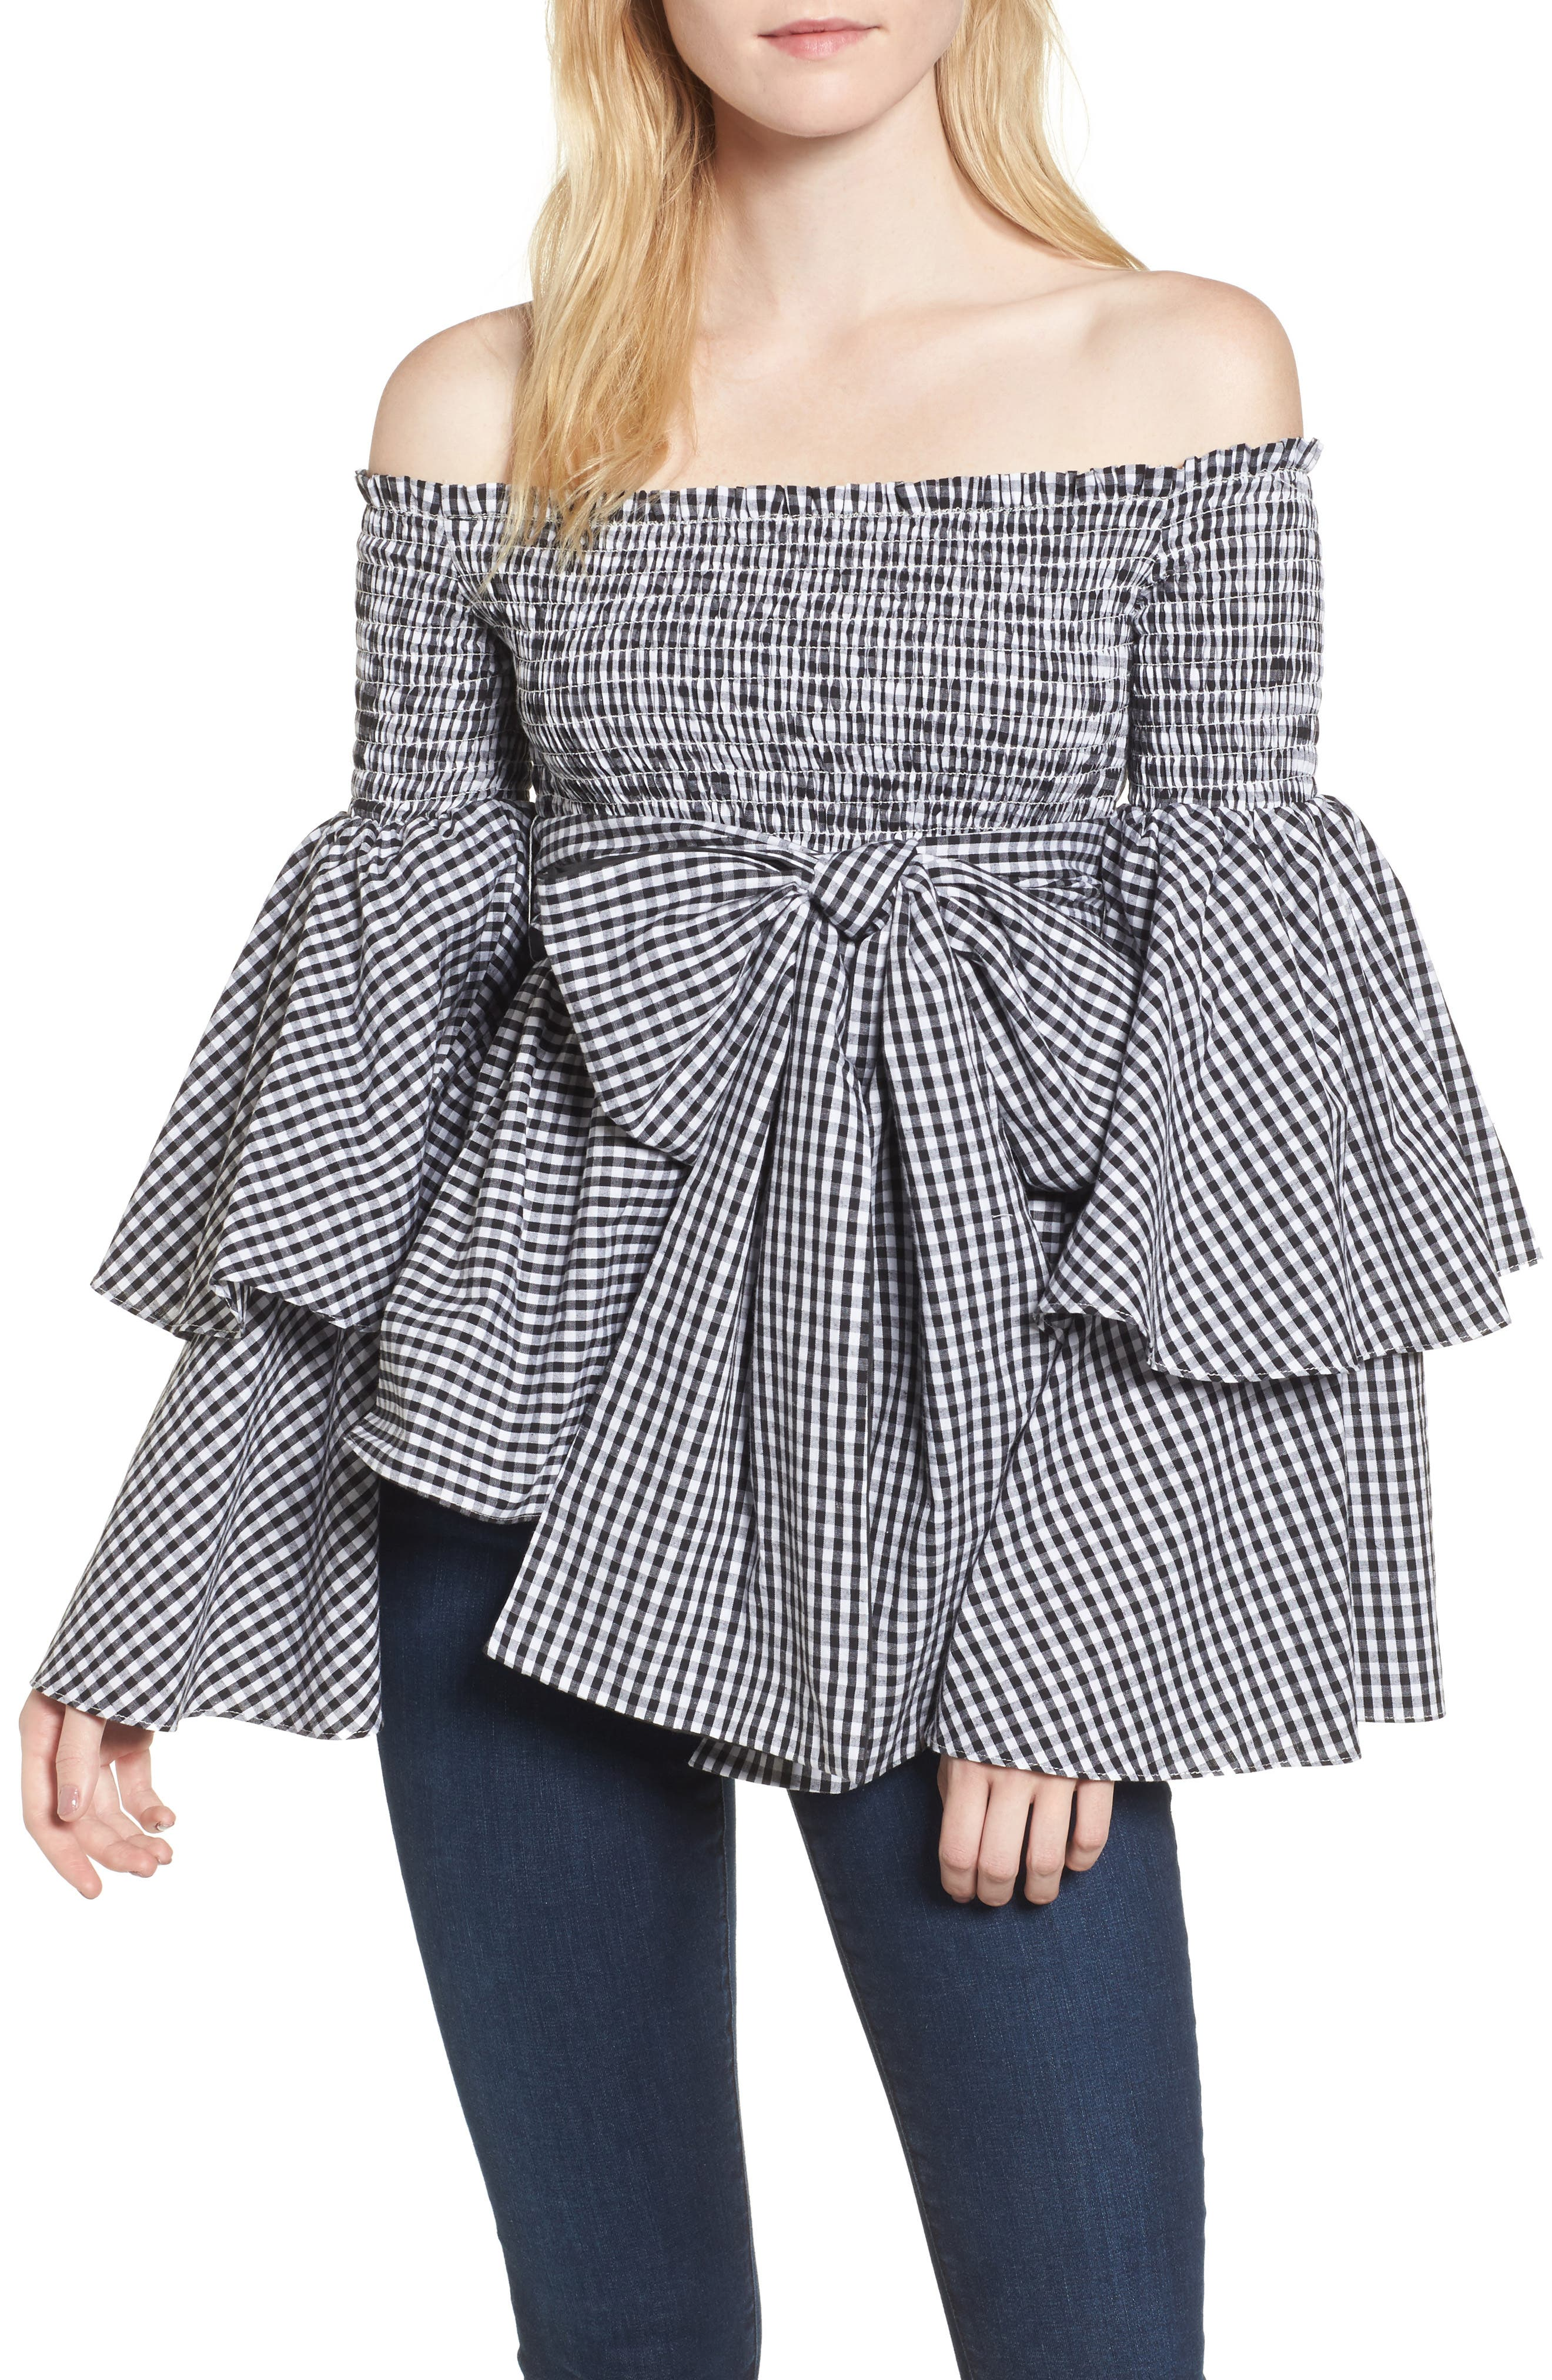 Disco Fever Off the Shoulder Top,                             Main thumbnail 1, color,                             Checkered Black